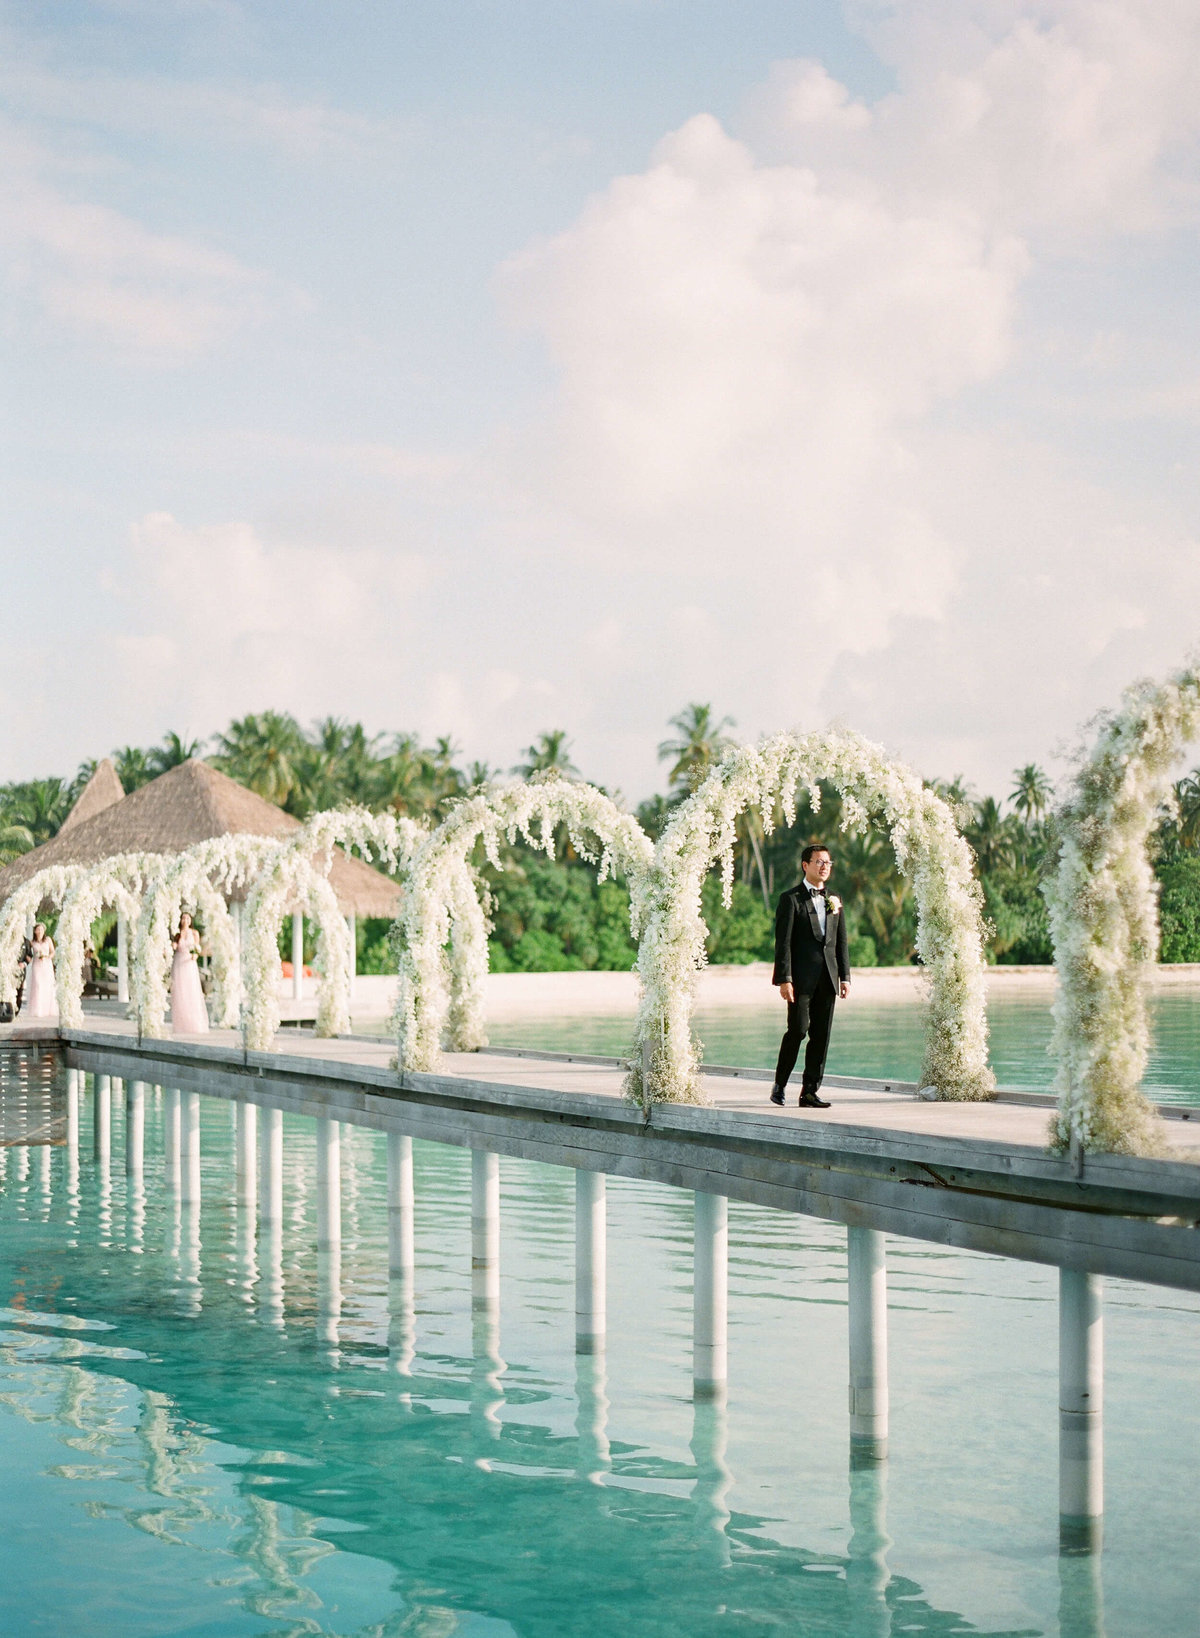 54-KTMerry-destinationwedding-groom-processional-Maldives